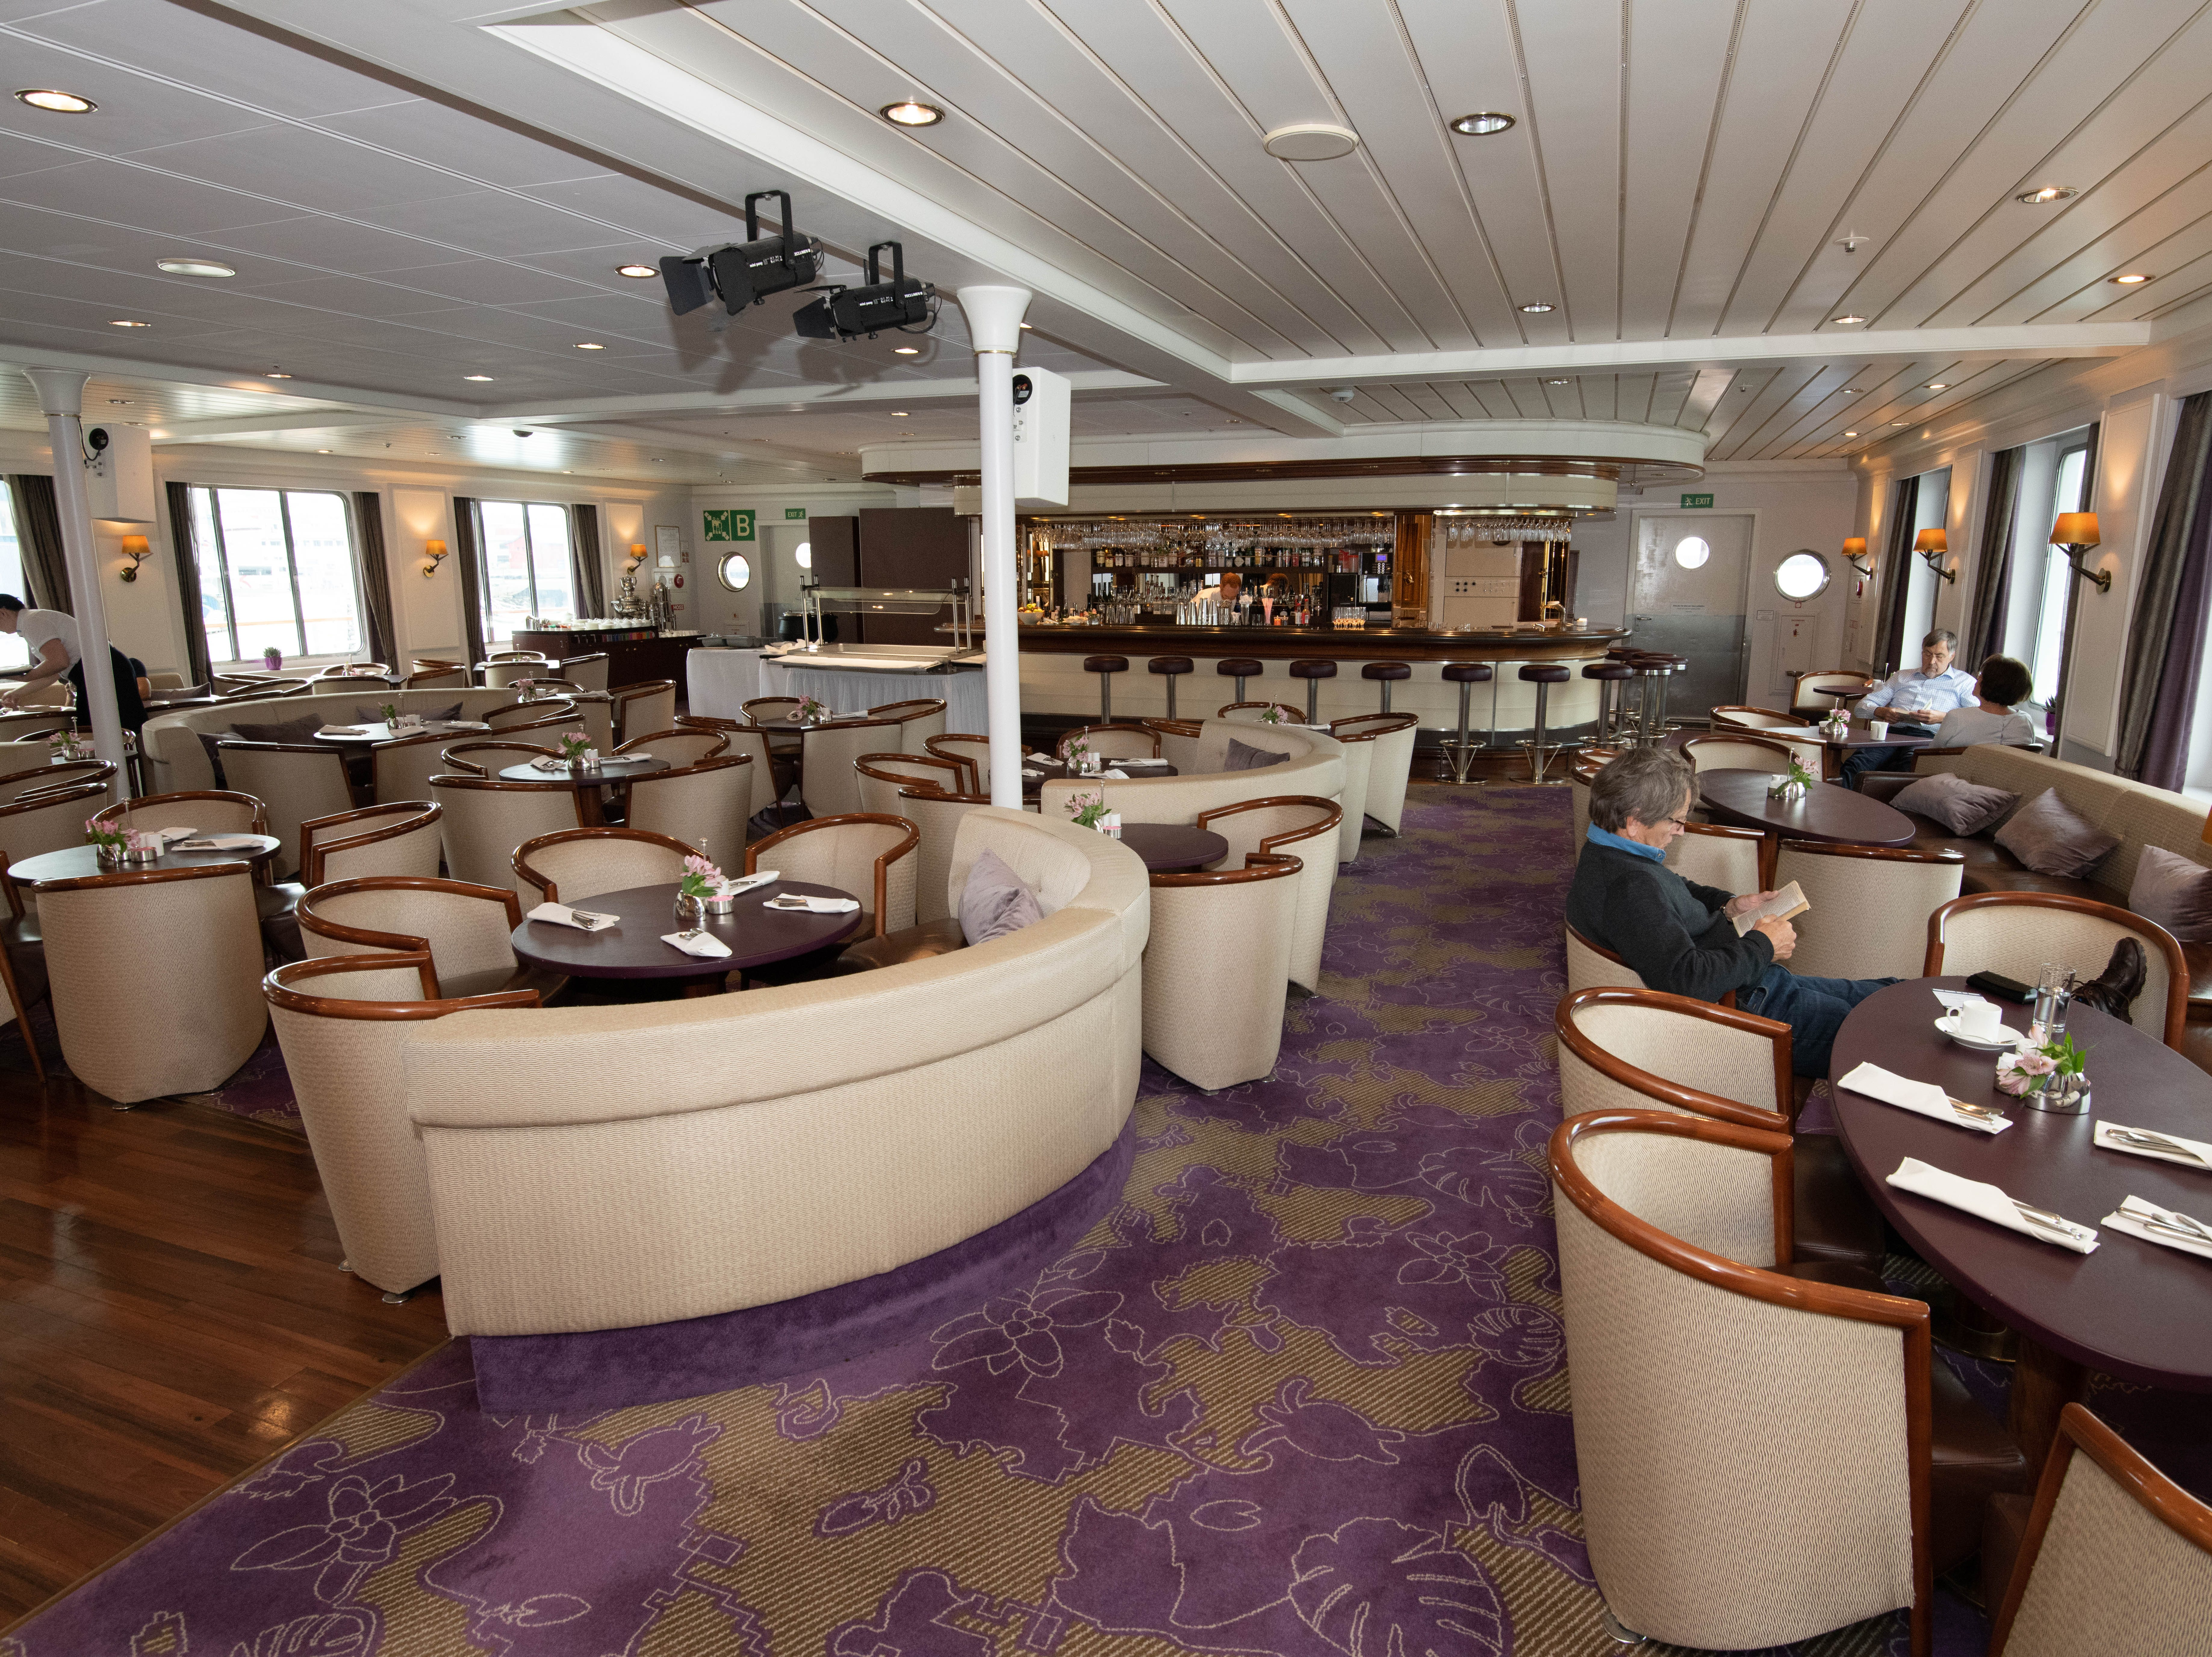 Bremen's main lounge, the Bremen Club, is located at the back of Deck 5. It's  the chief gathering point for passengers during voyages, serving as both a traditional lounge during parts of the day and as the site of casual buffet breakfasts and lunches.